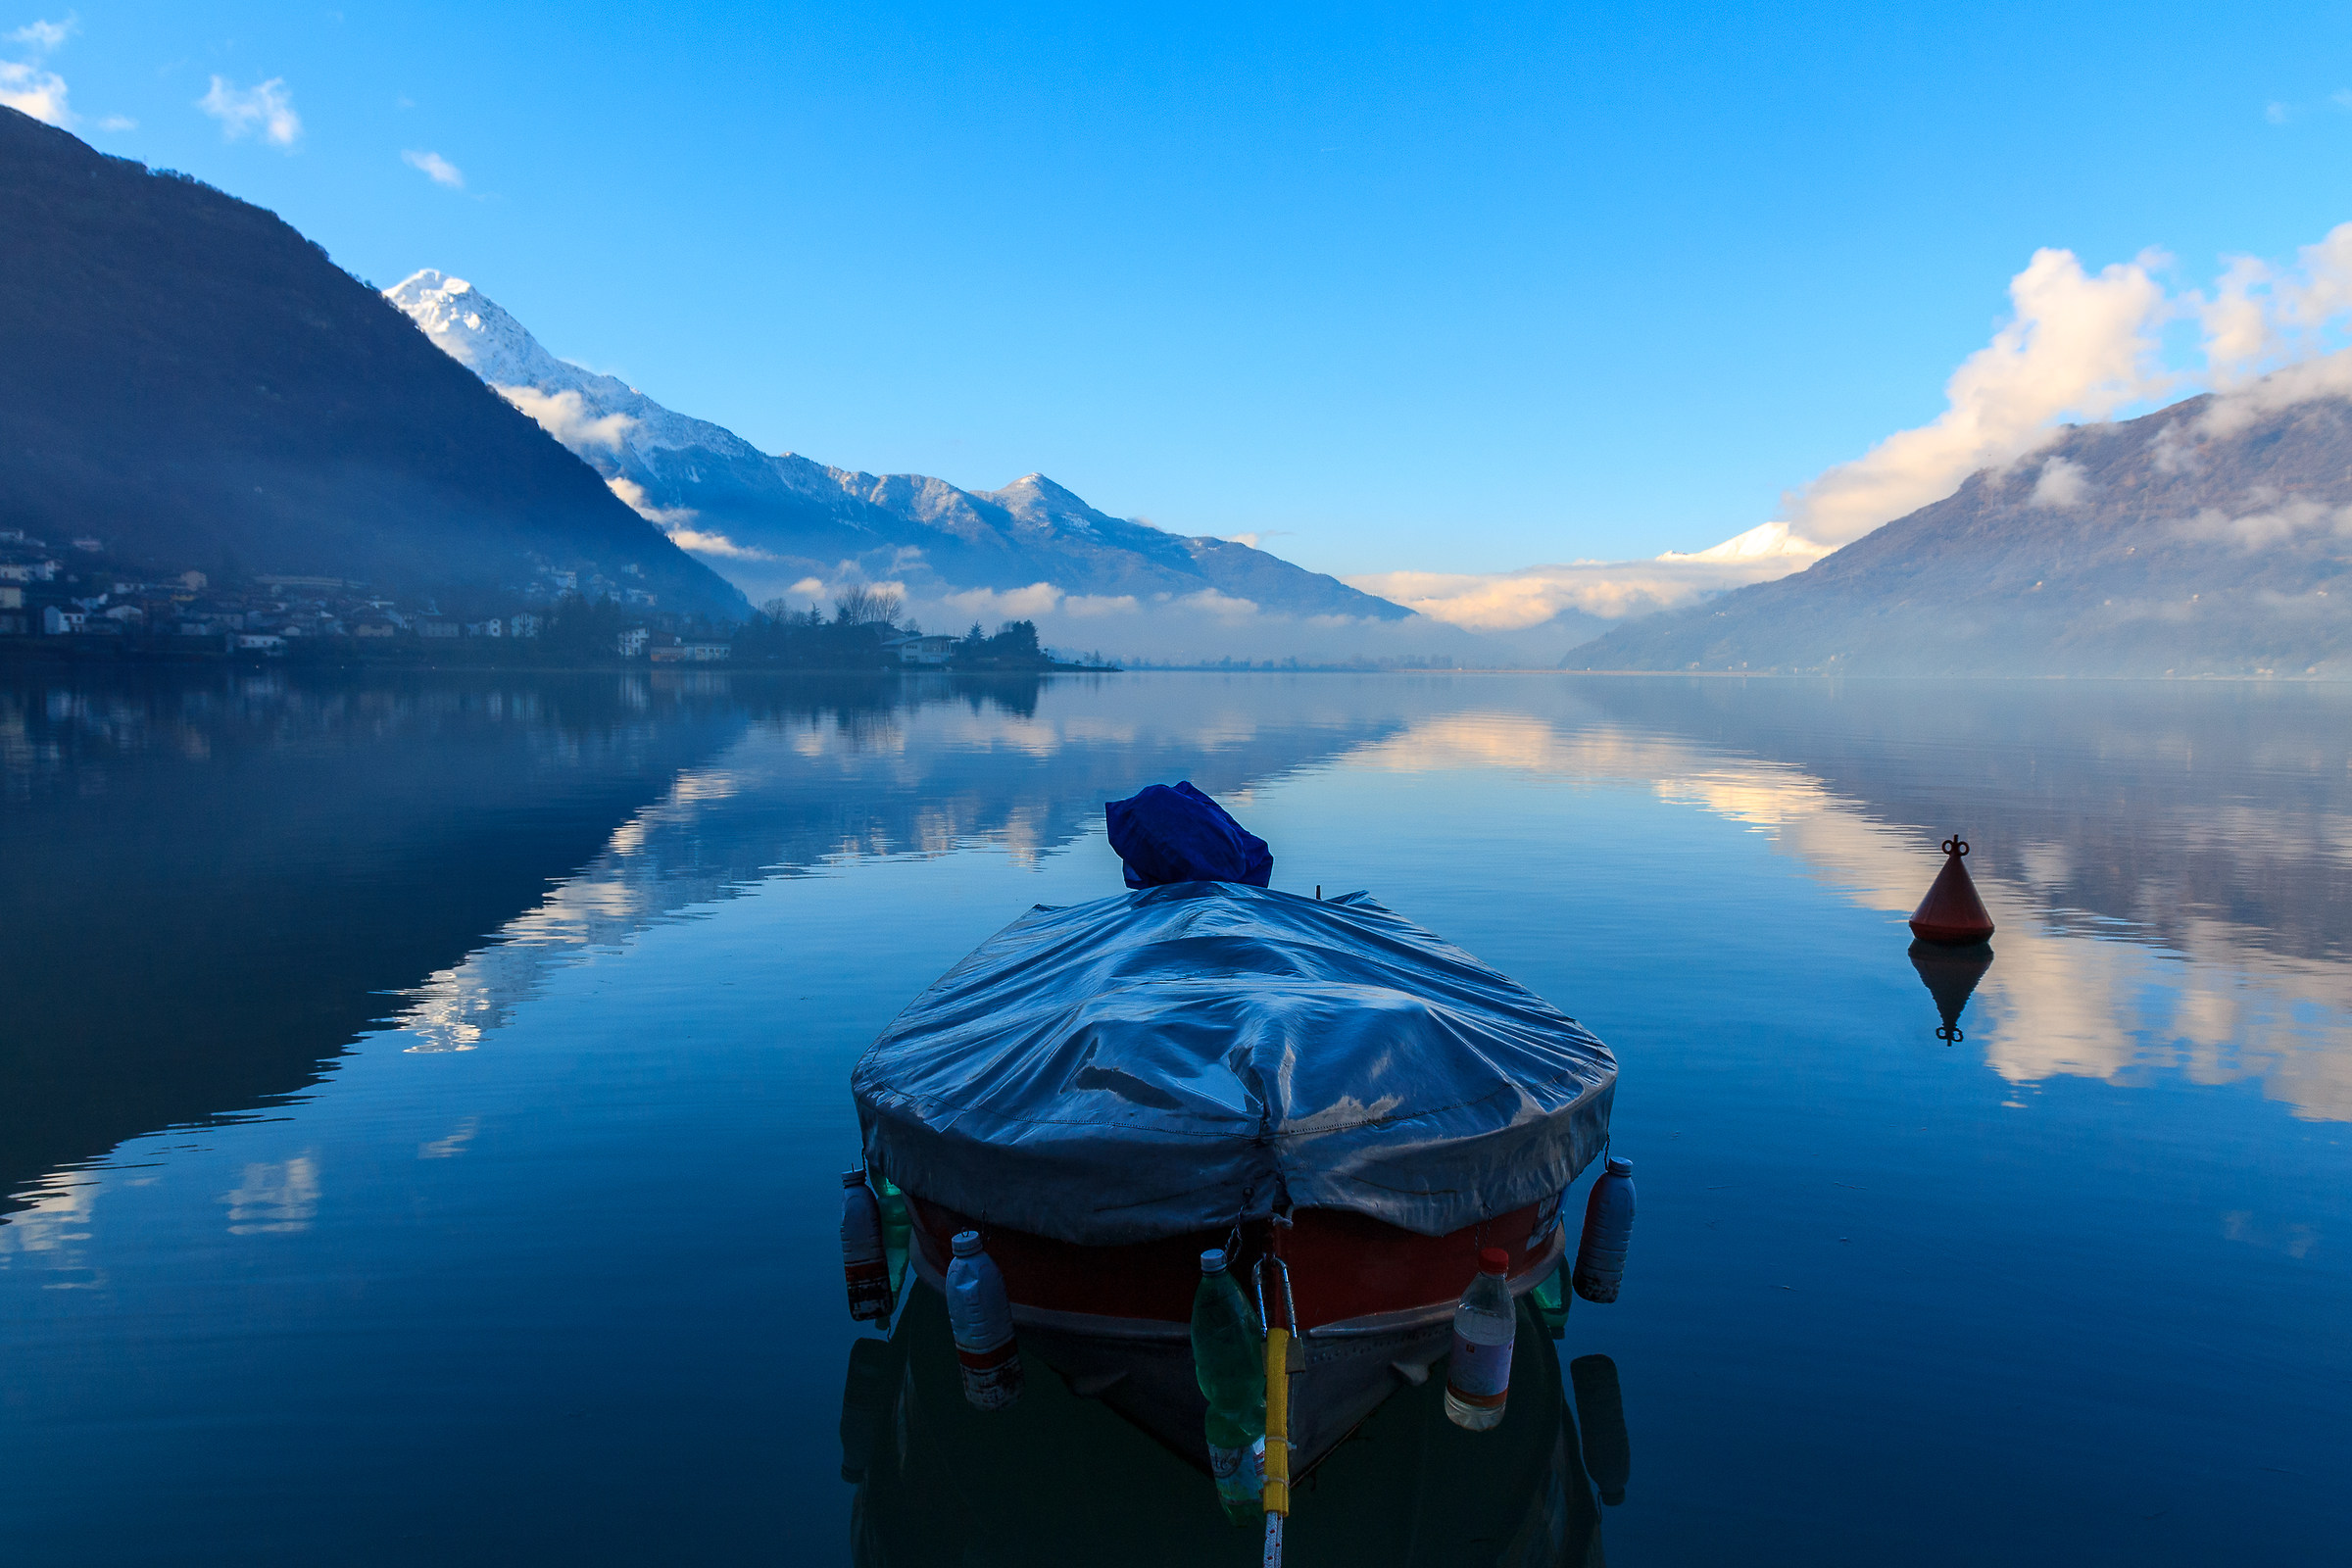 The boat floats in the blue...